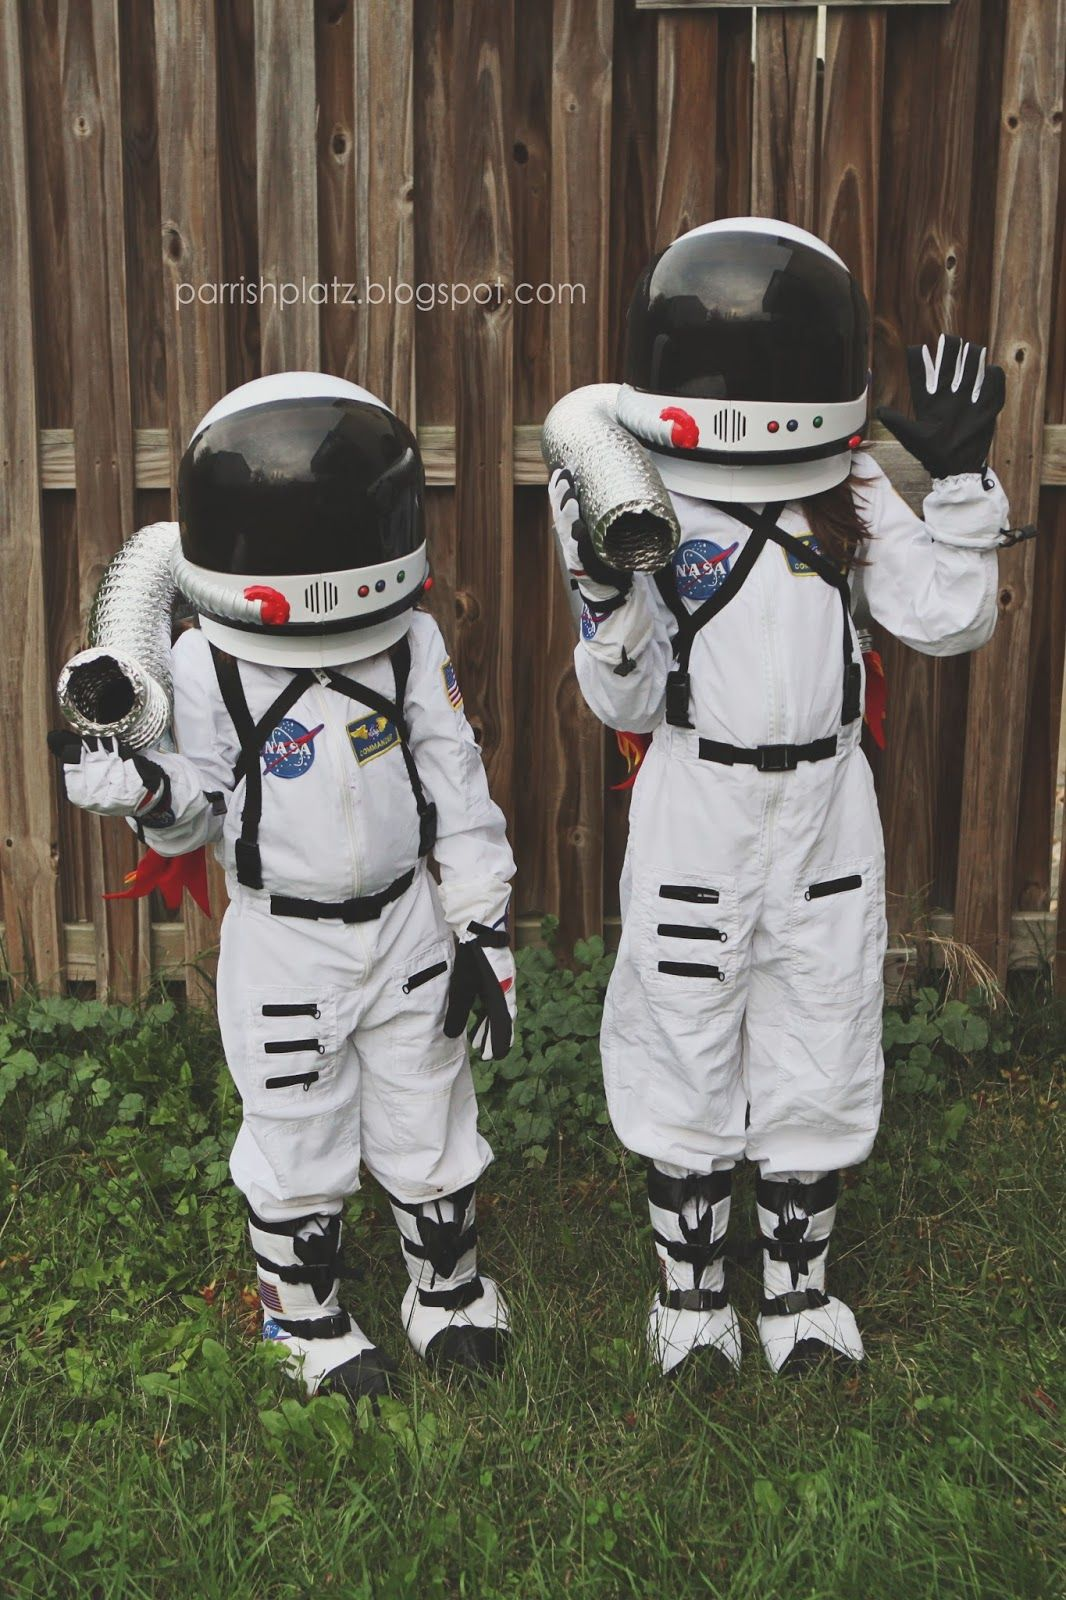 25+ unique Kids astronaut costume ideas on Pinterest ...